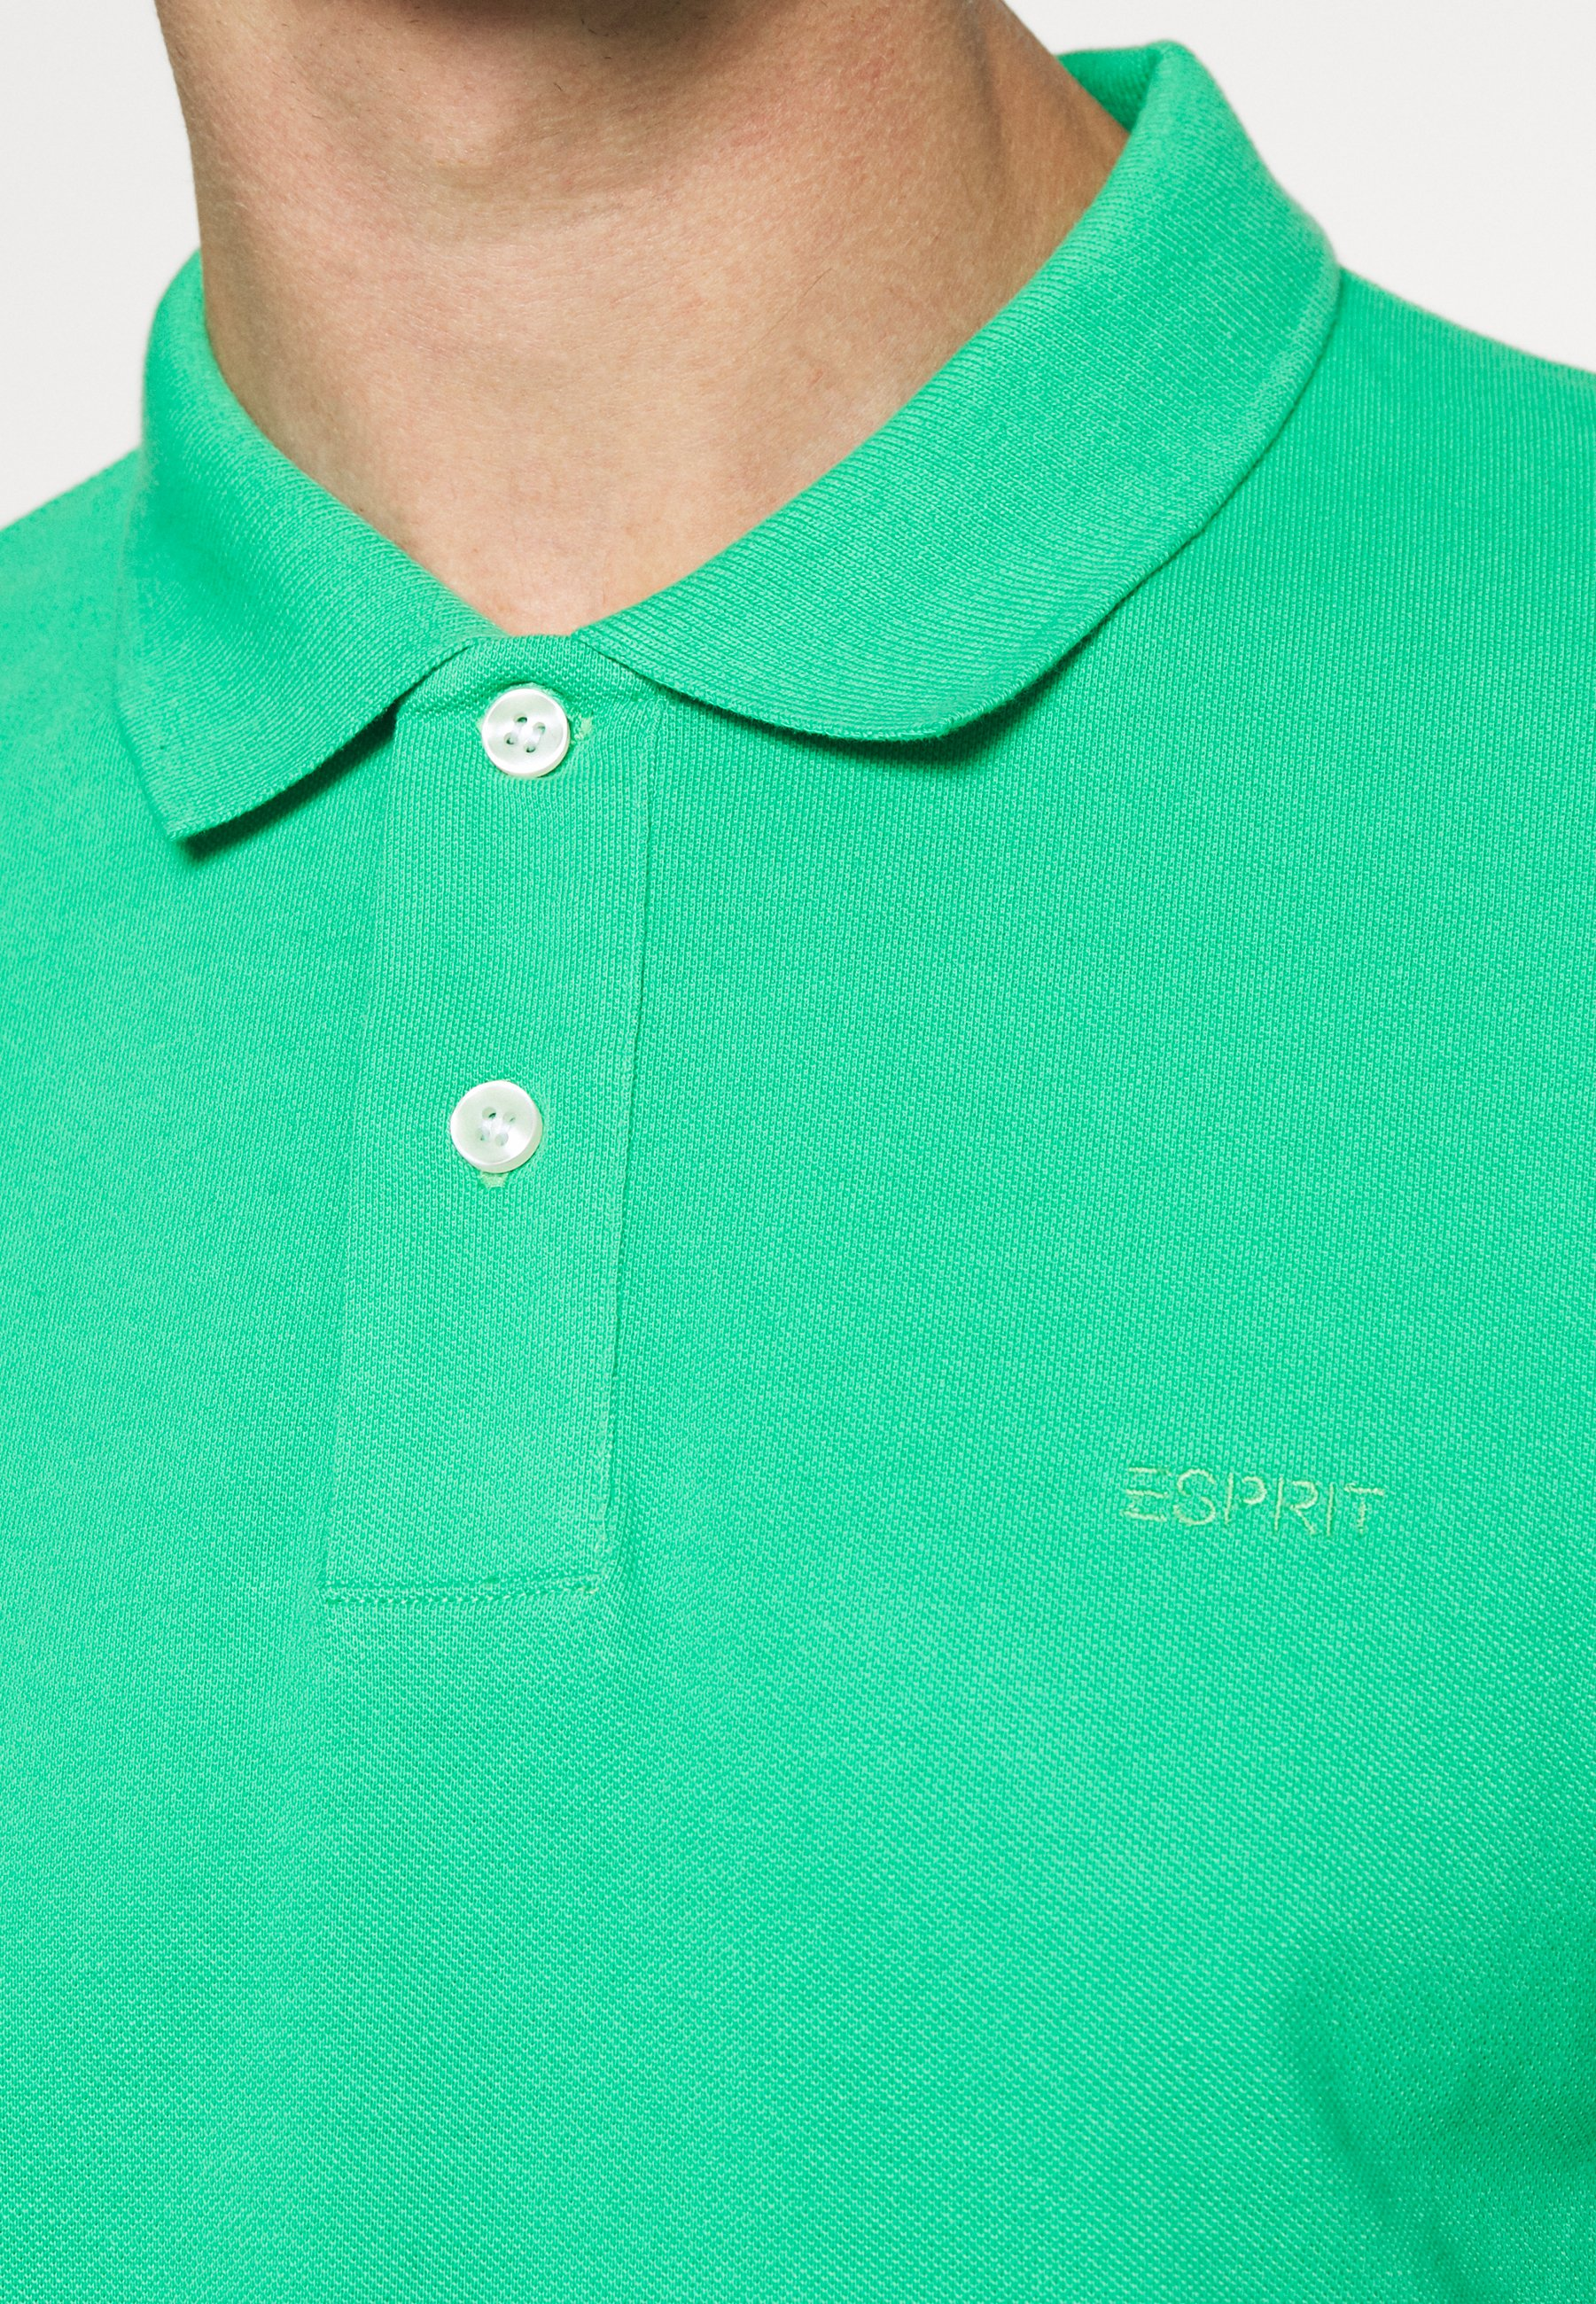 Esprit Polo shirt - green CMAGL